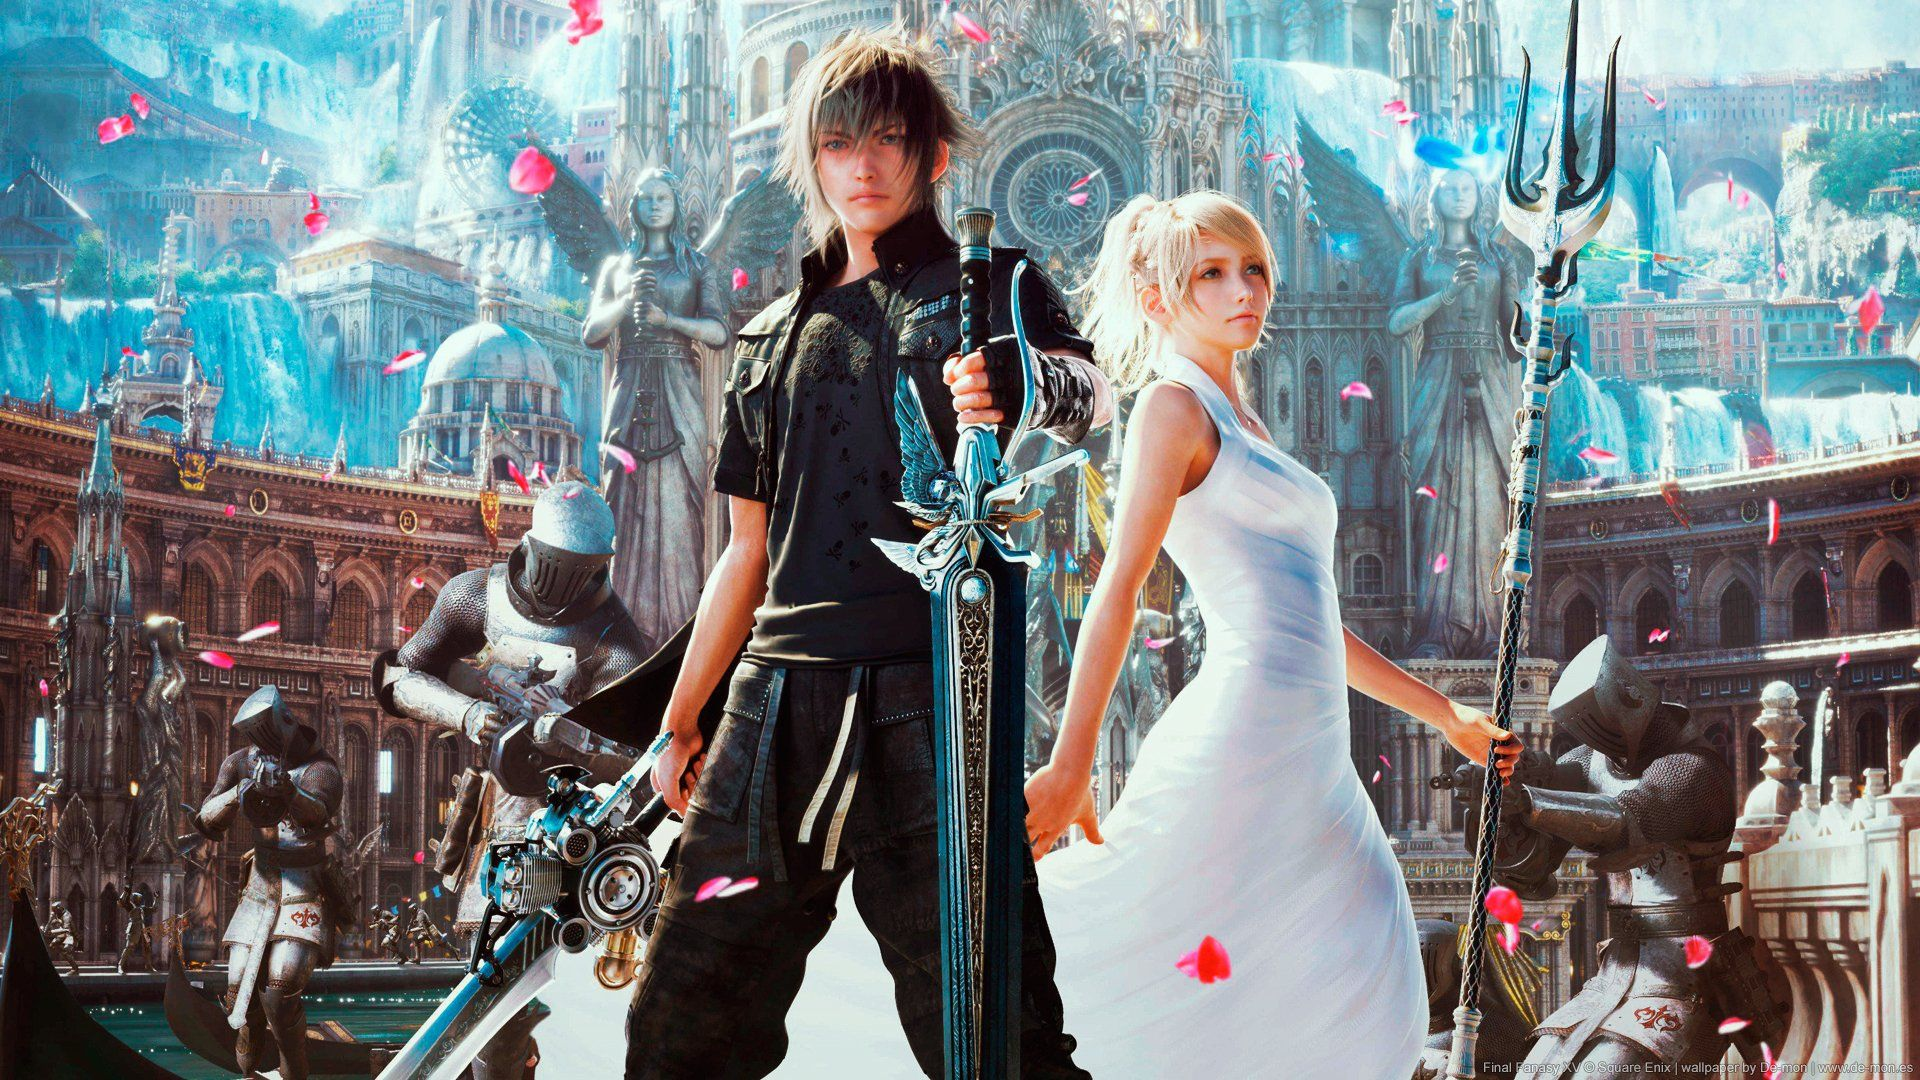 Final Fantasy 15 Wallpapers Top Free Final Fantasy 15 Backgrounds Wallpaperaccess